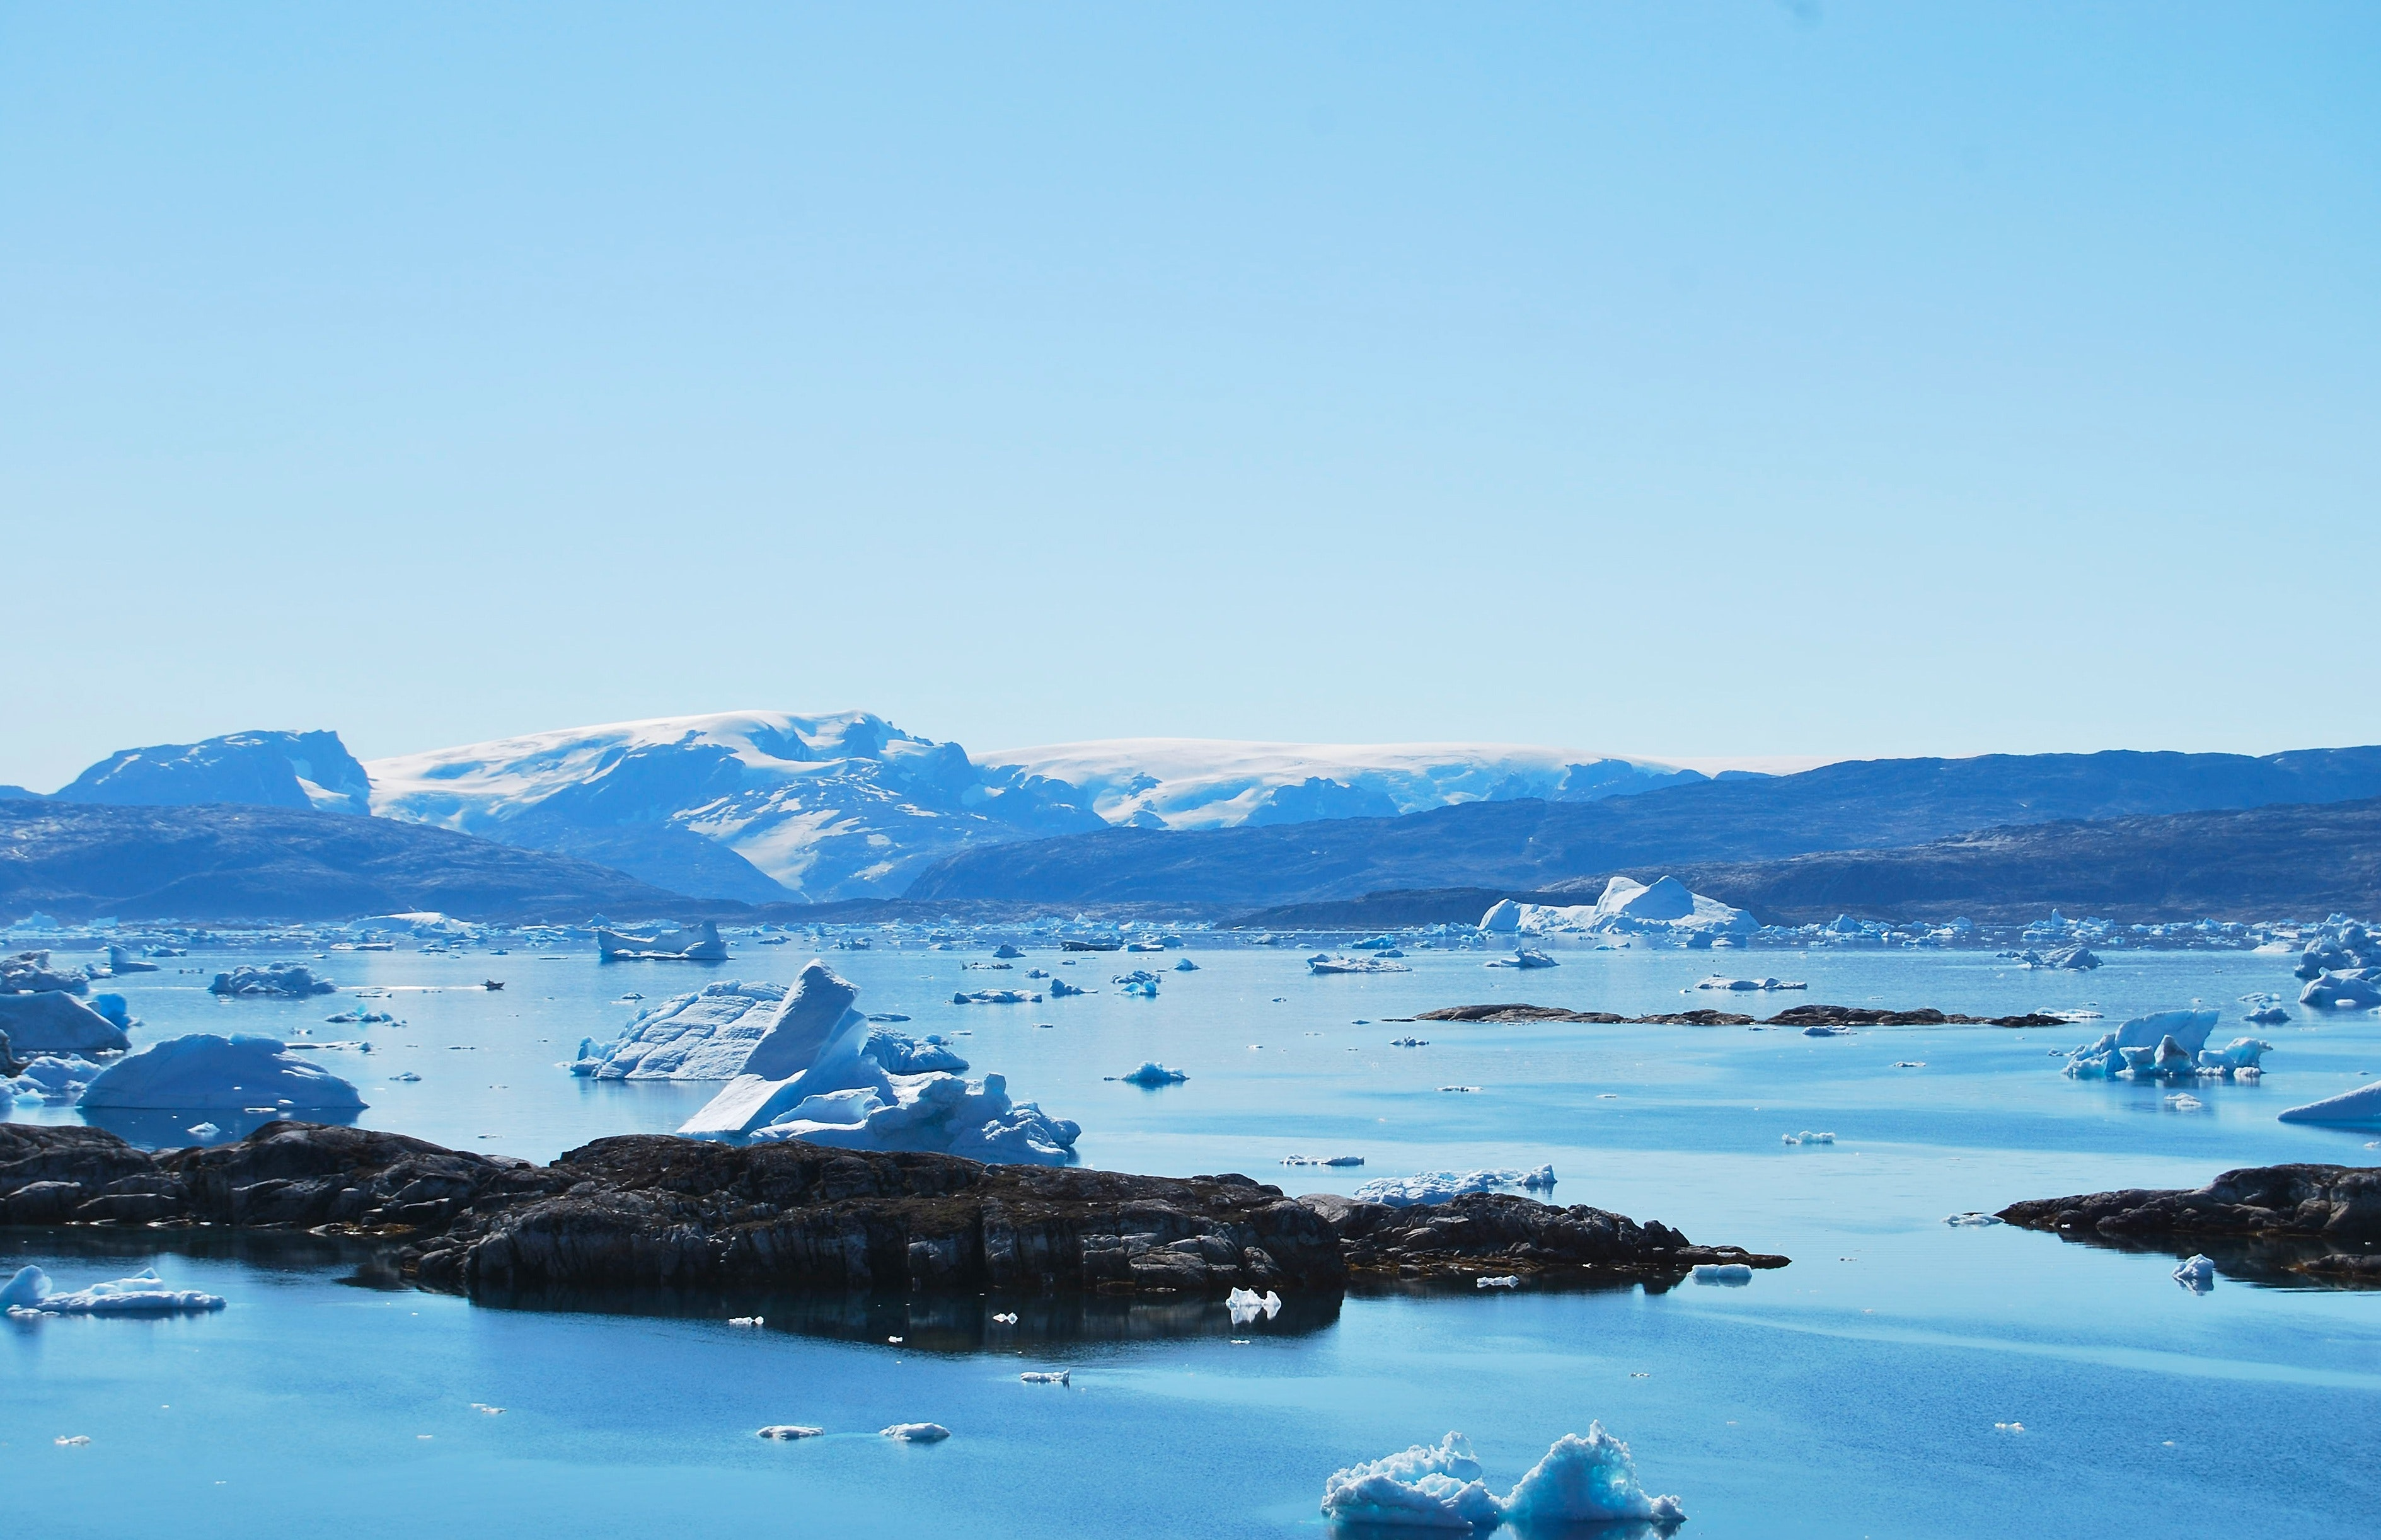 Icy Mountain and Ocean Scenery